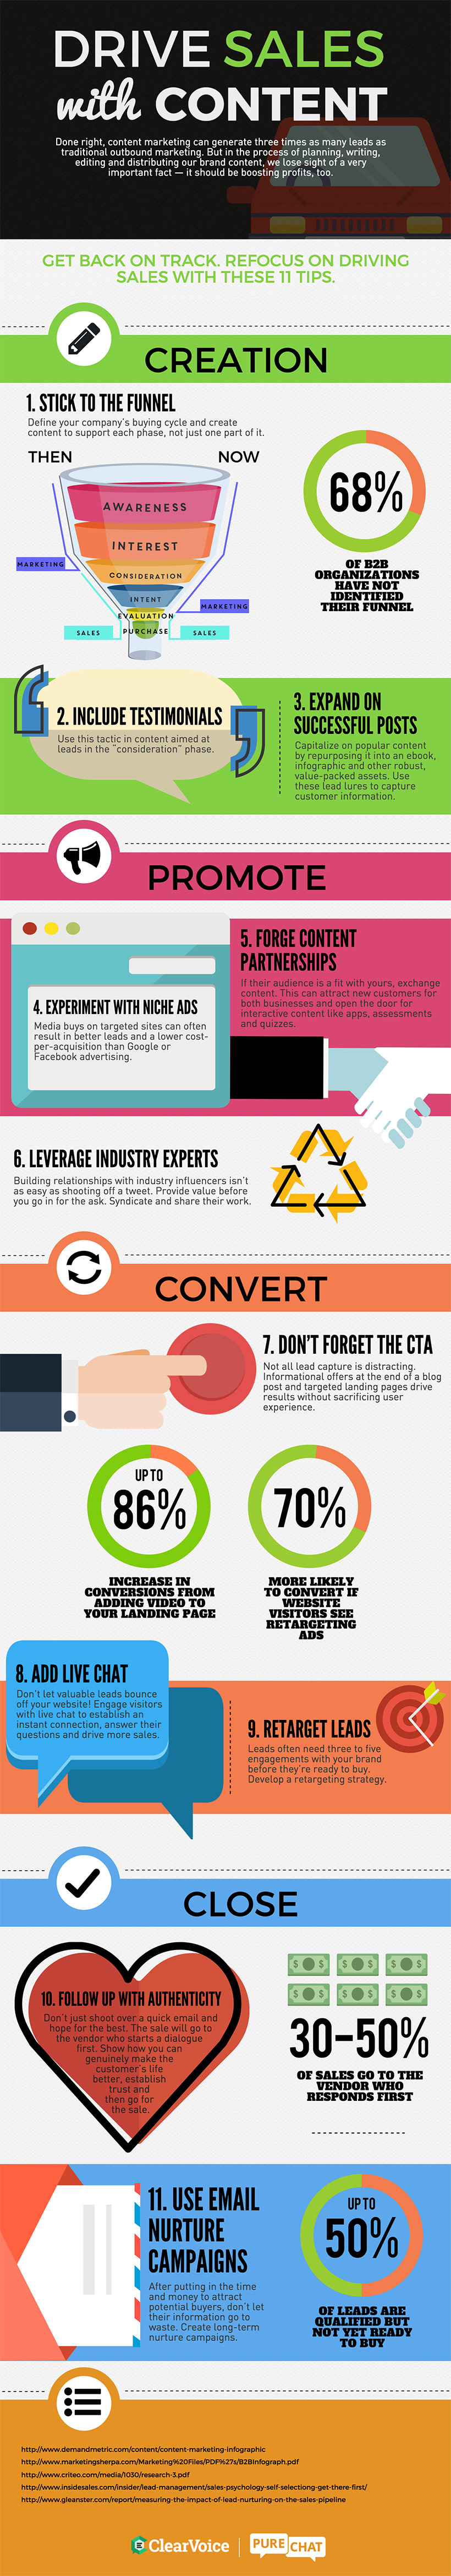 Infographic: Drive Sales Content Marketing